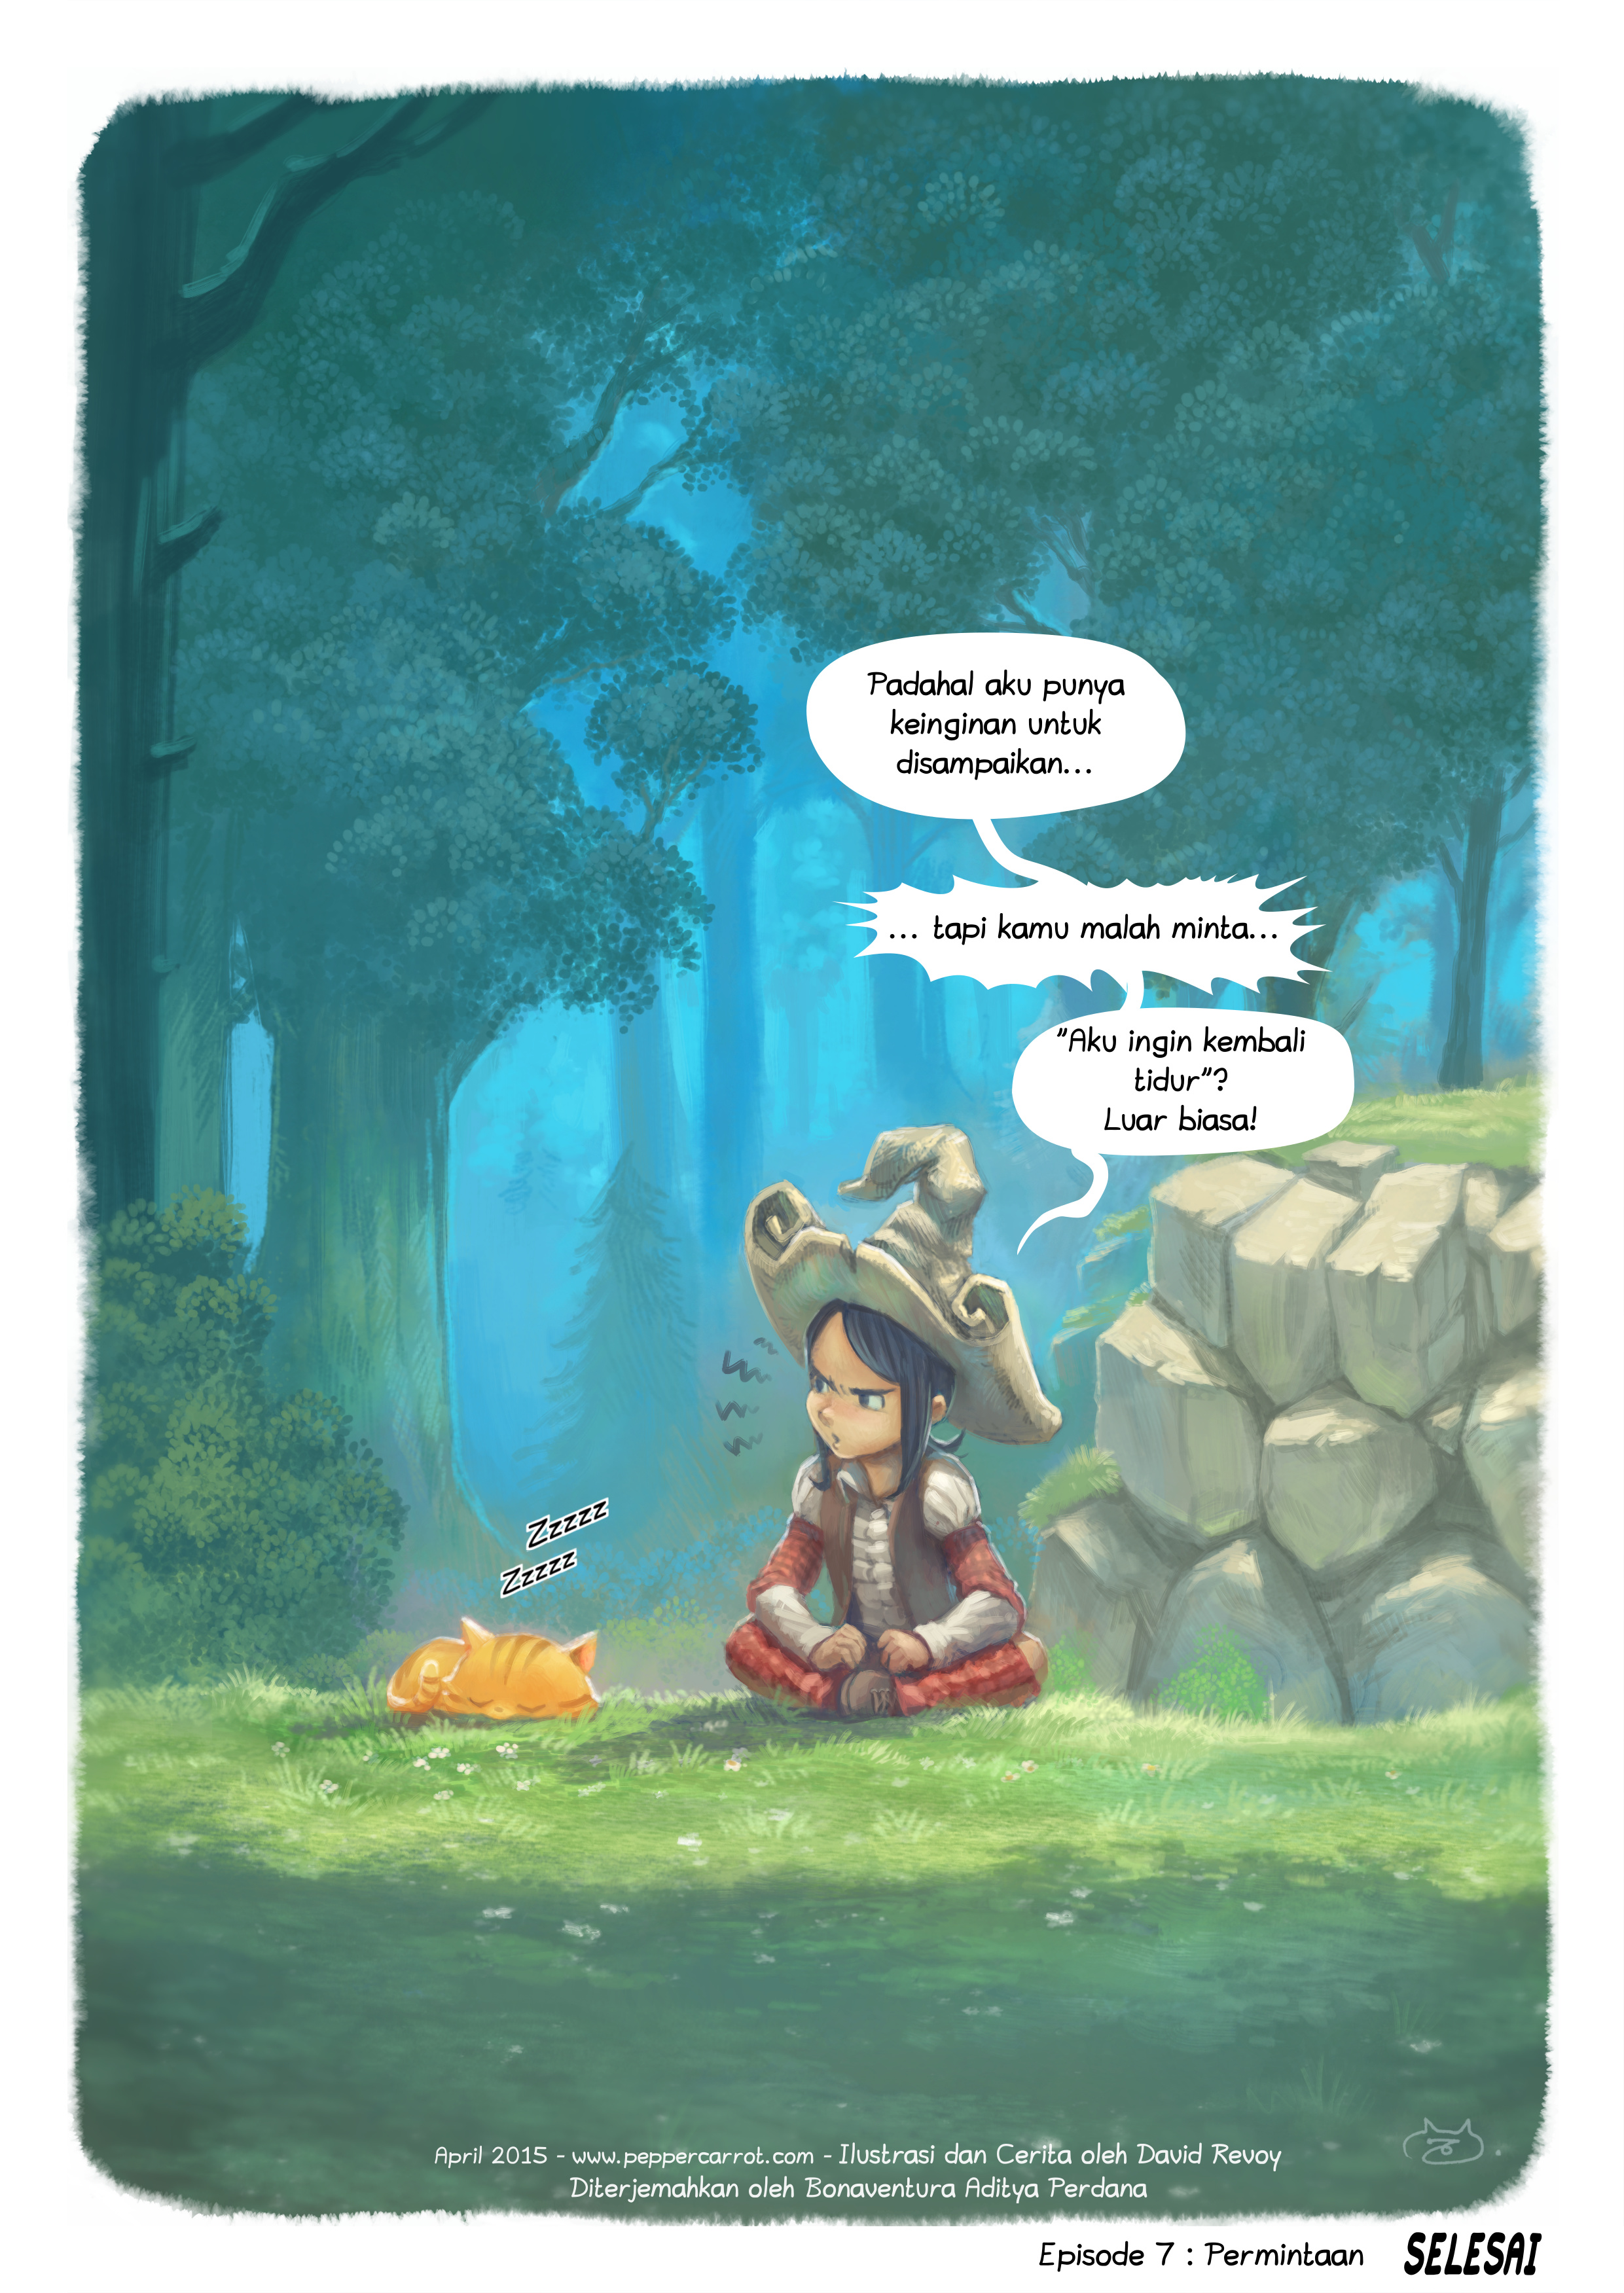 Episode 7: Permintaan, Page 5